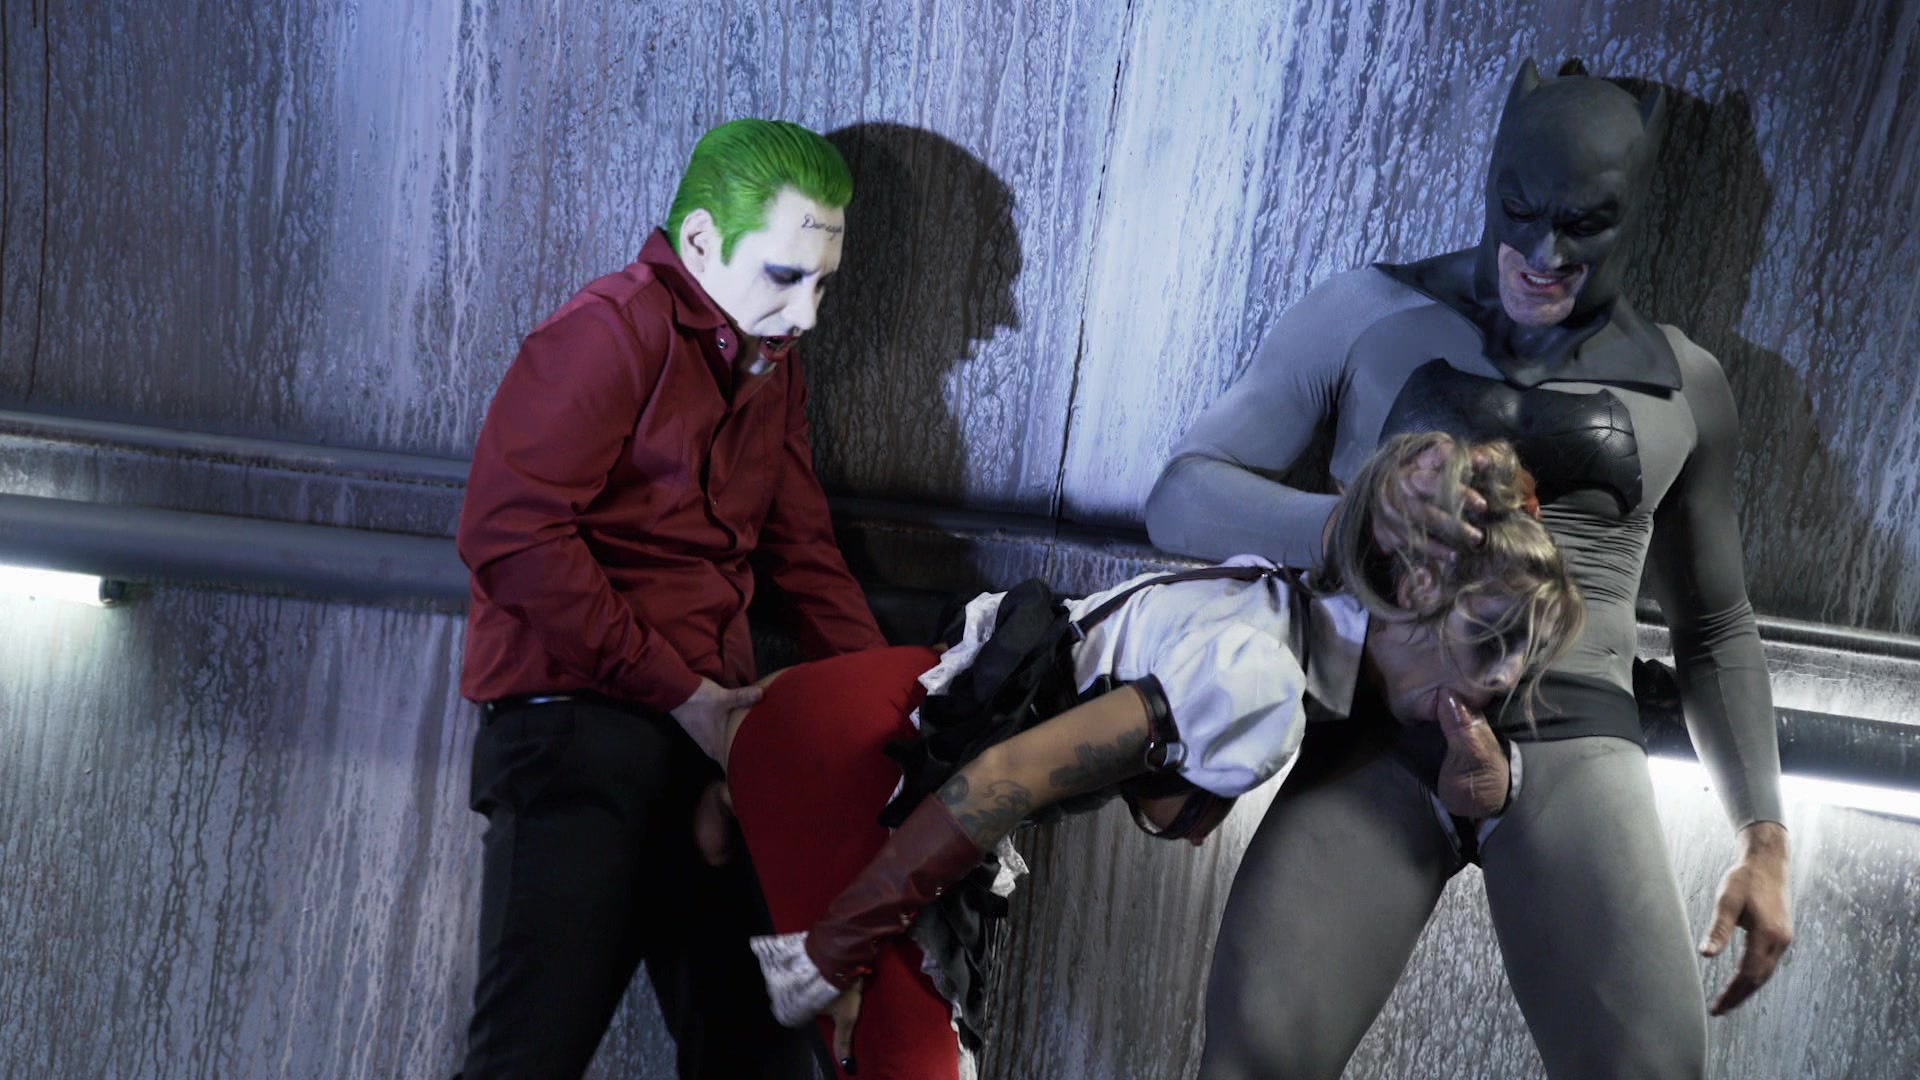 suicide squad an axel braun parody 2016